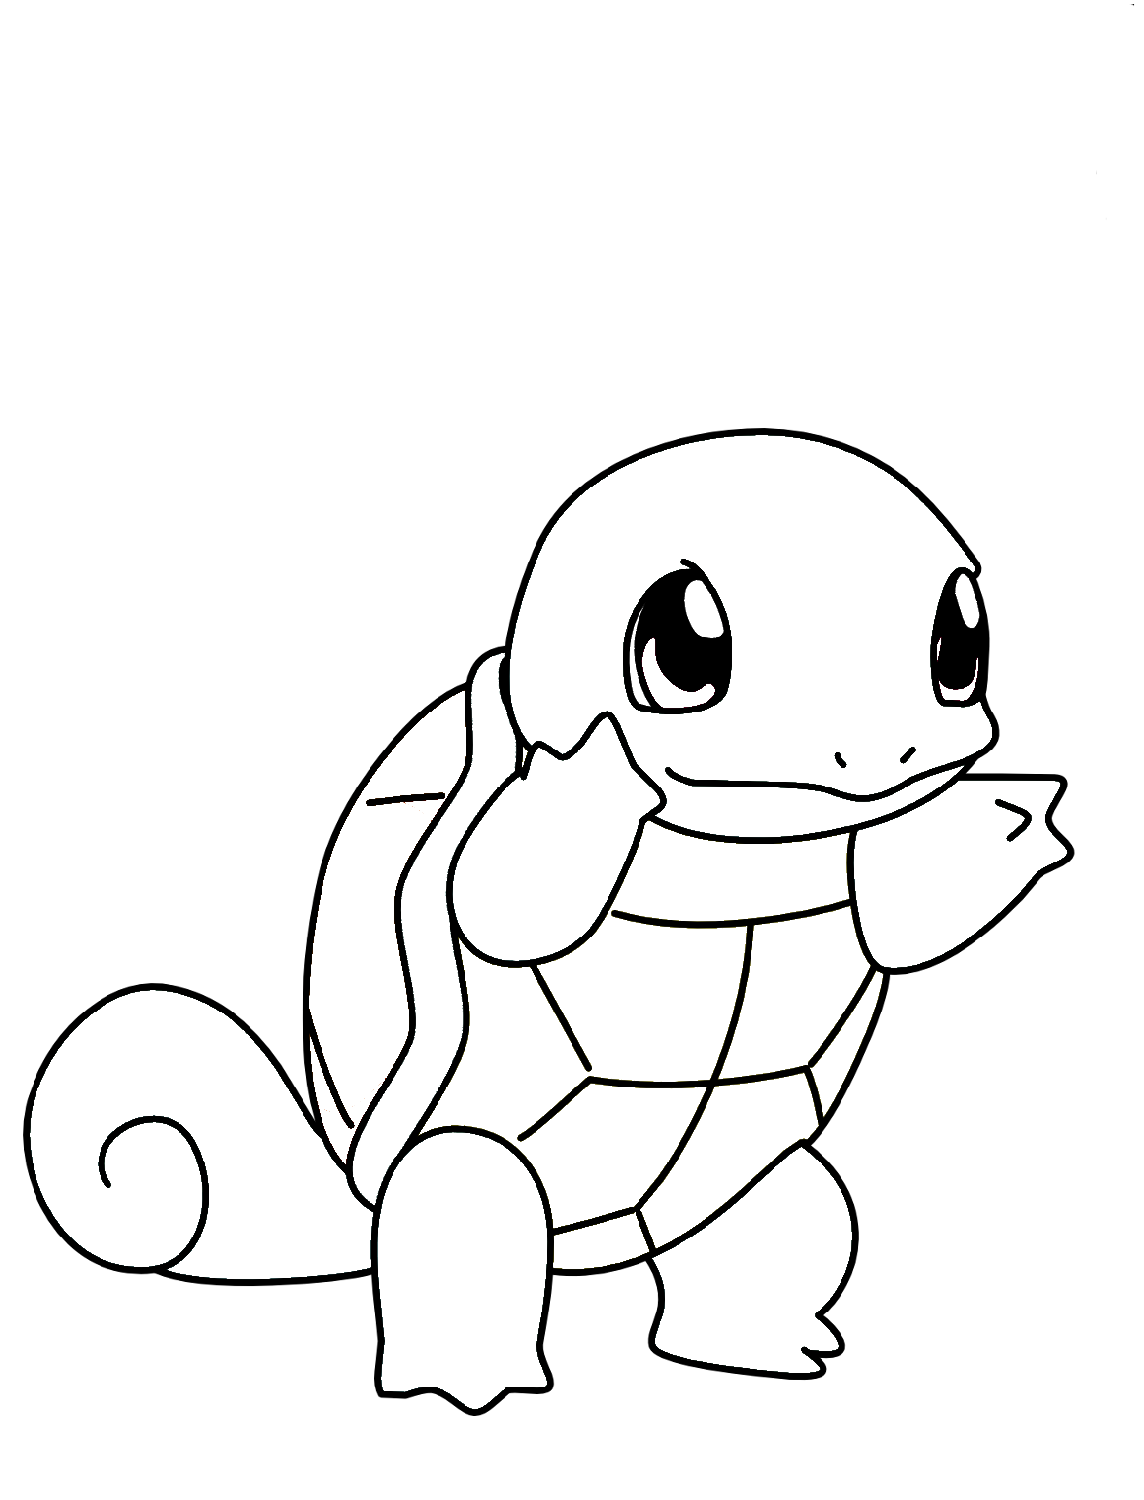 squirtle coloring page squirtle coloring pages to download and print for free page coloring squirtle